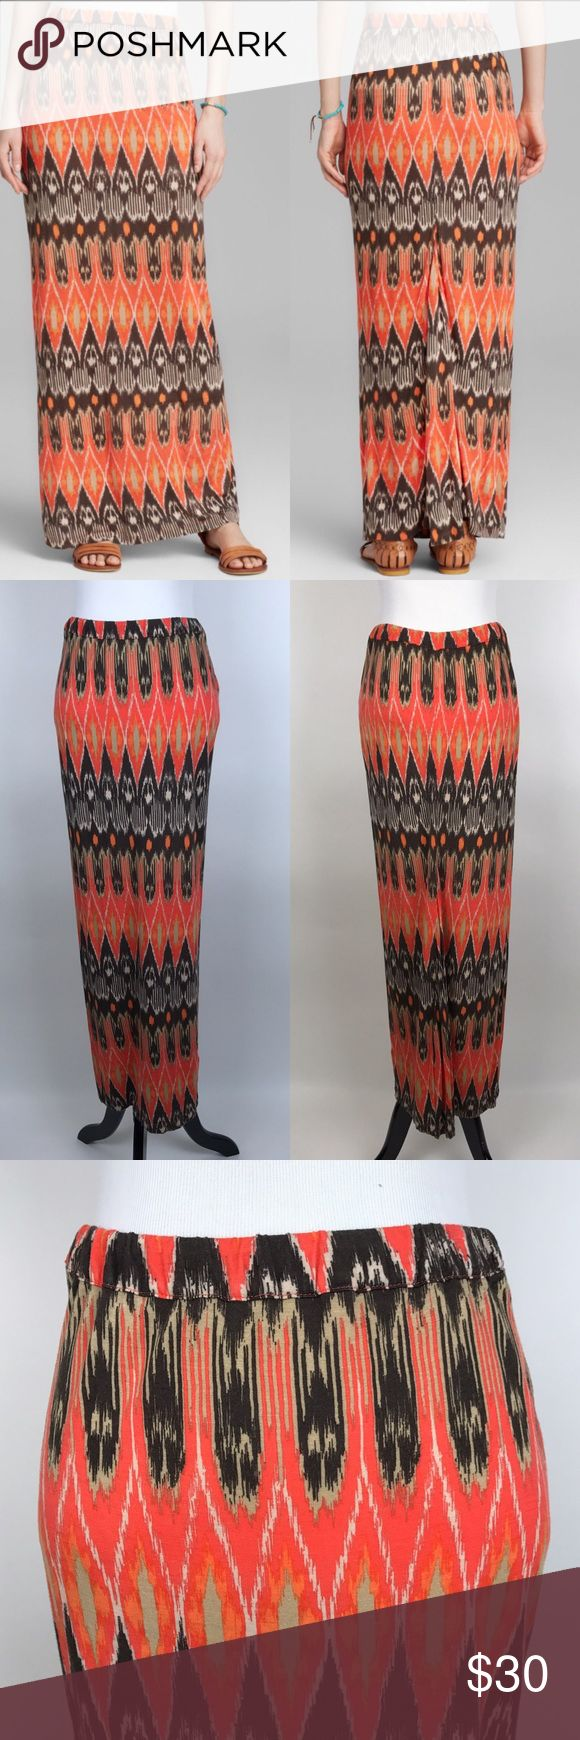 "[Joie] Loni Ikat Print Skirt Red Maxi Long Boho S Long Ikat print Maxi skirt. Pull on style with elastic waistband. Soft and stretchy. Waist: 14"" flat across Length: 38"" Condition: Excellent pre-owned condition. *GG20 Joie Skirts Maxi"